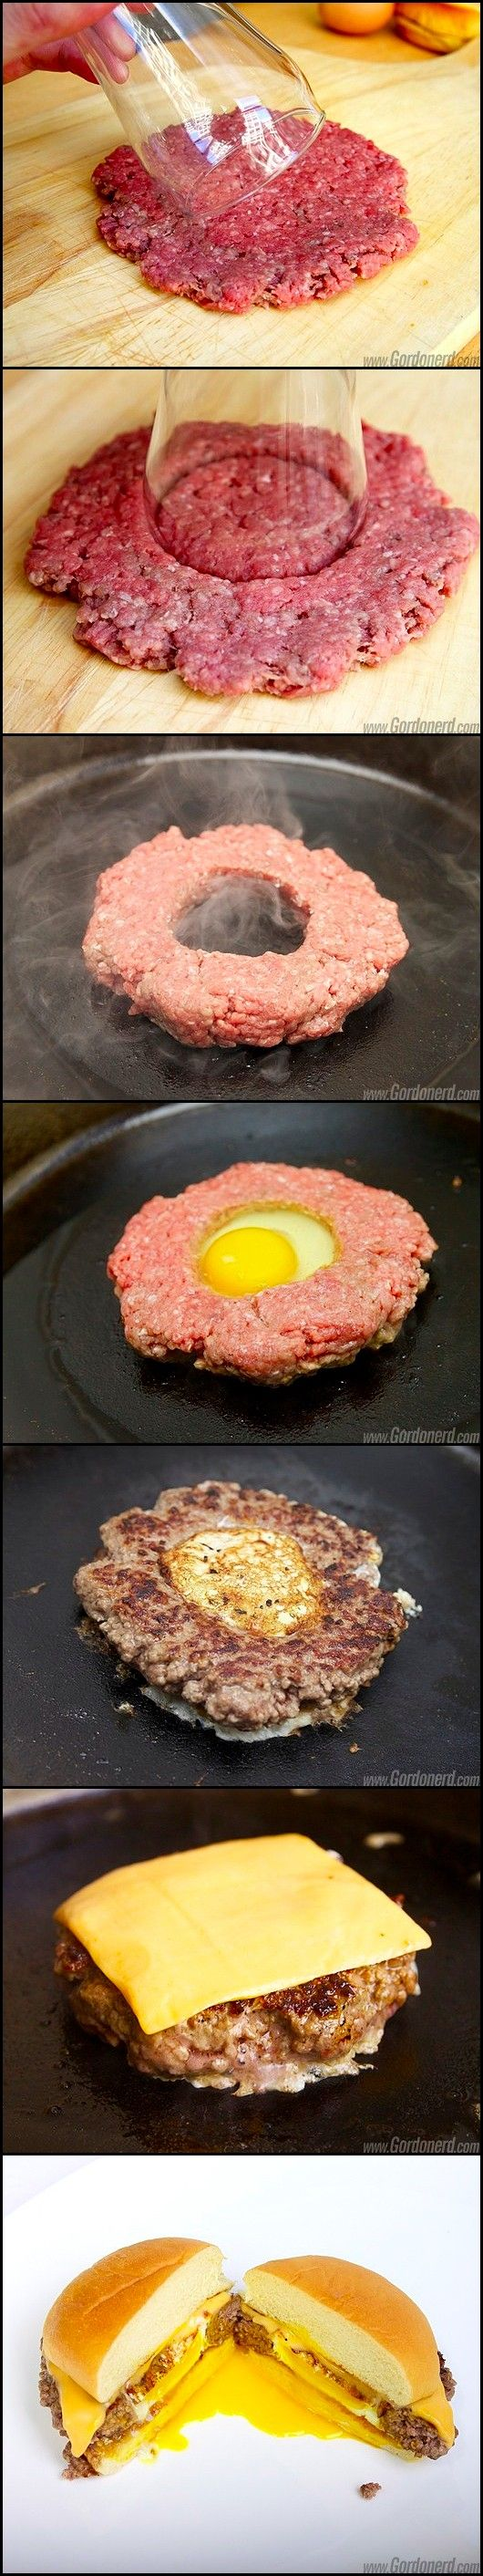 The Cheeseburger Eggsplosion, a Burger with a Fried Egg Center